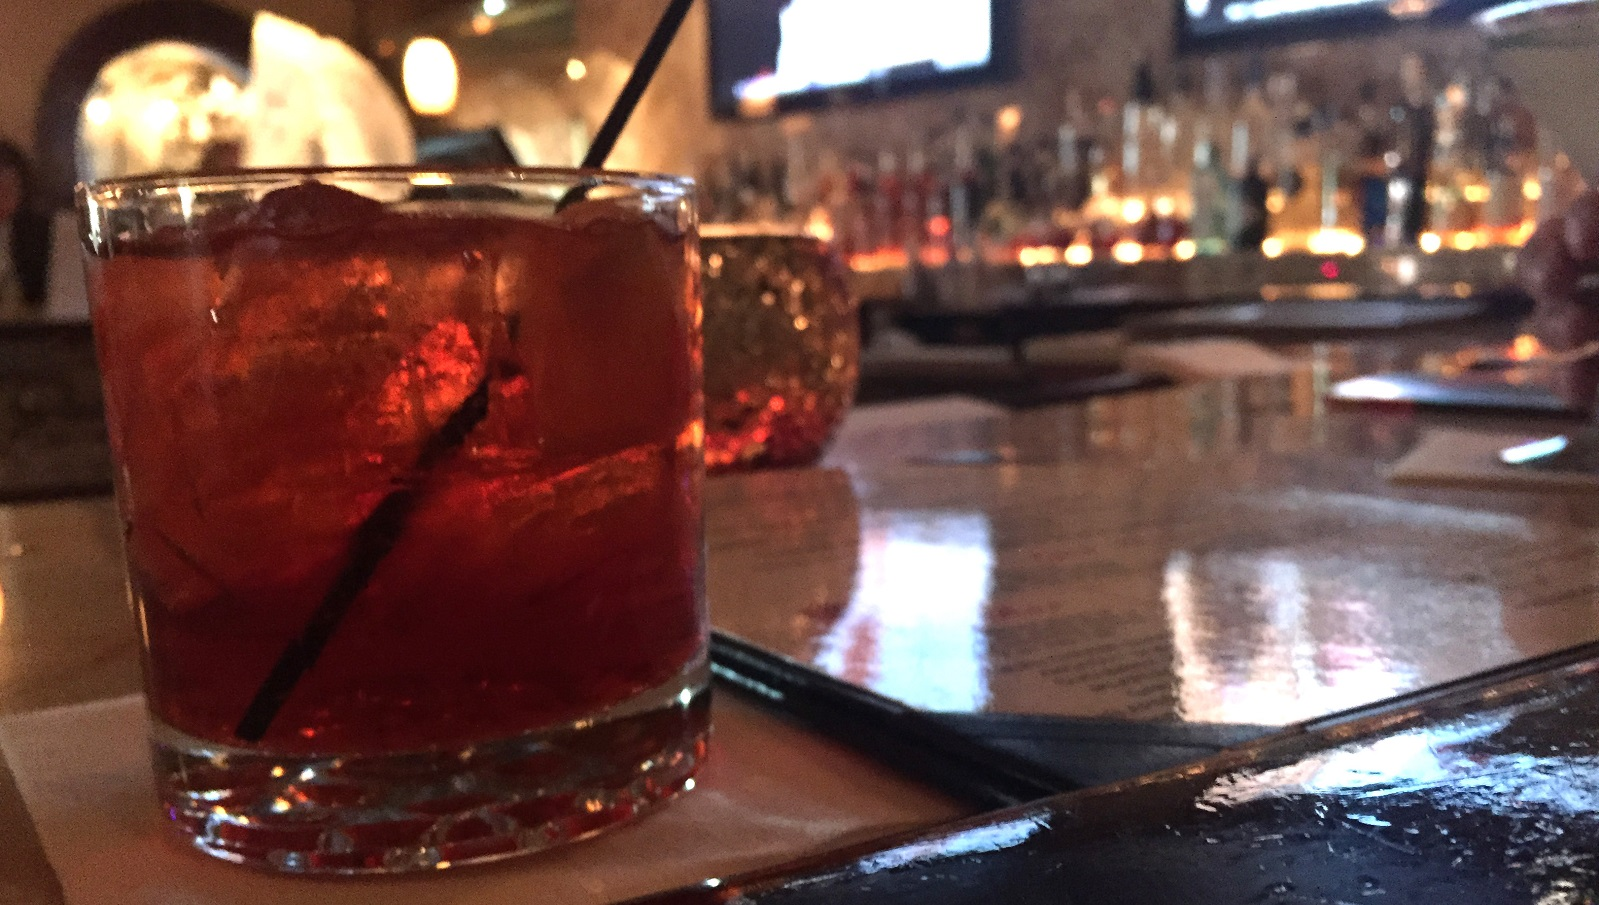 The barrel-aged Negroni from Salvatore's Italian Gardens. (Lizz Schumer/Special to the News)